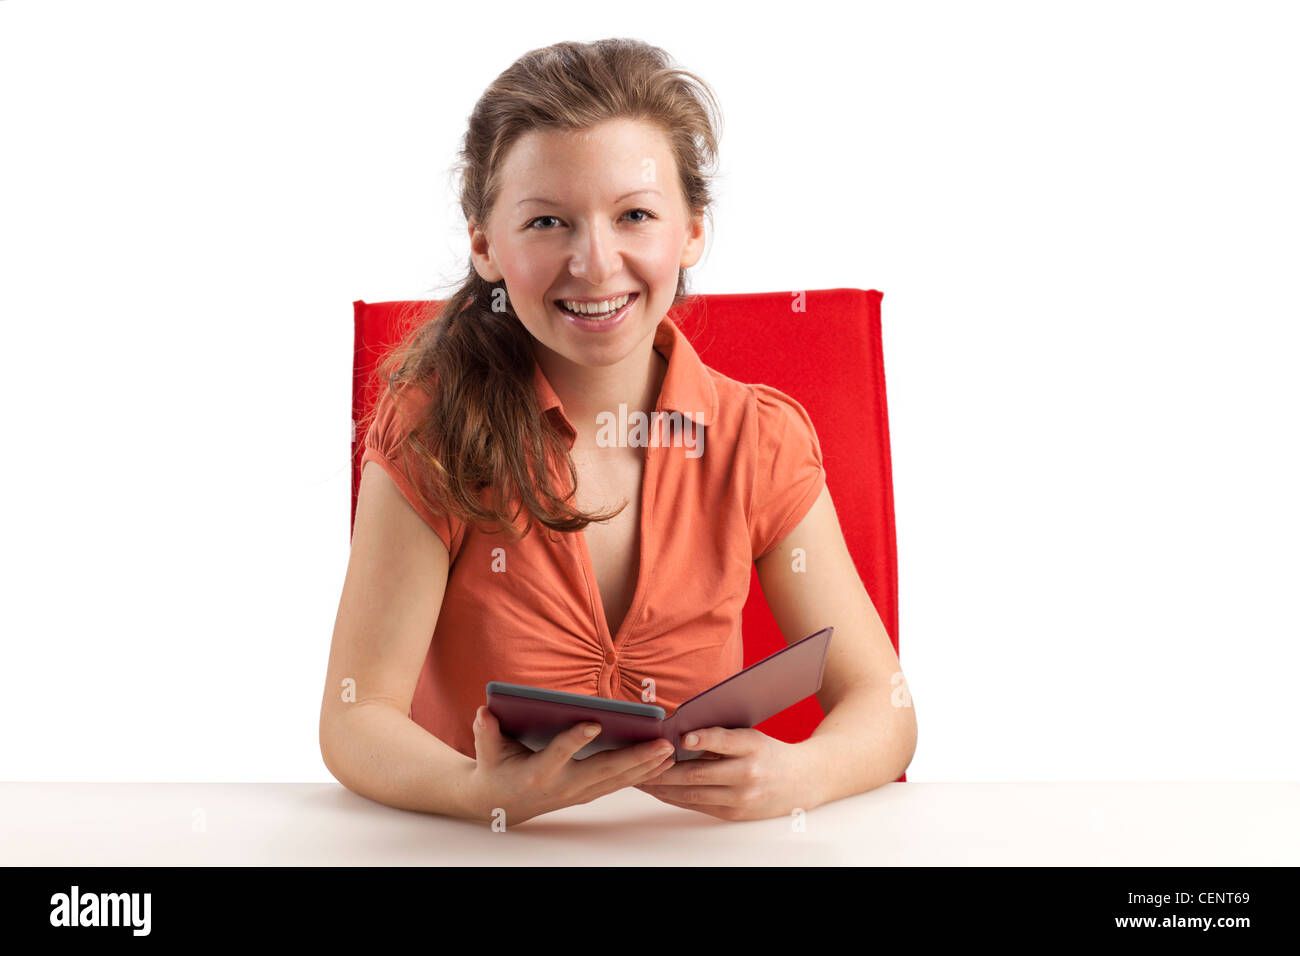 Young woman with ebook reader - Stock Image